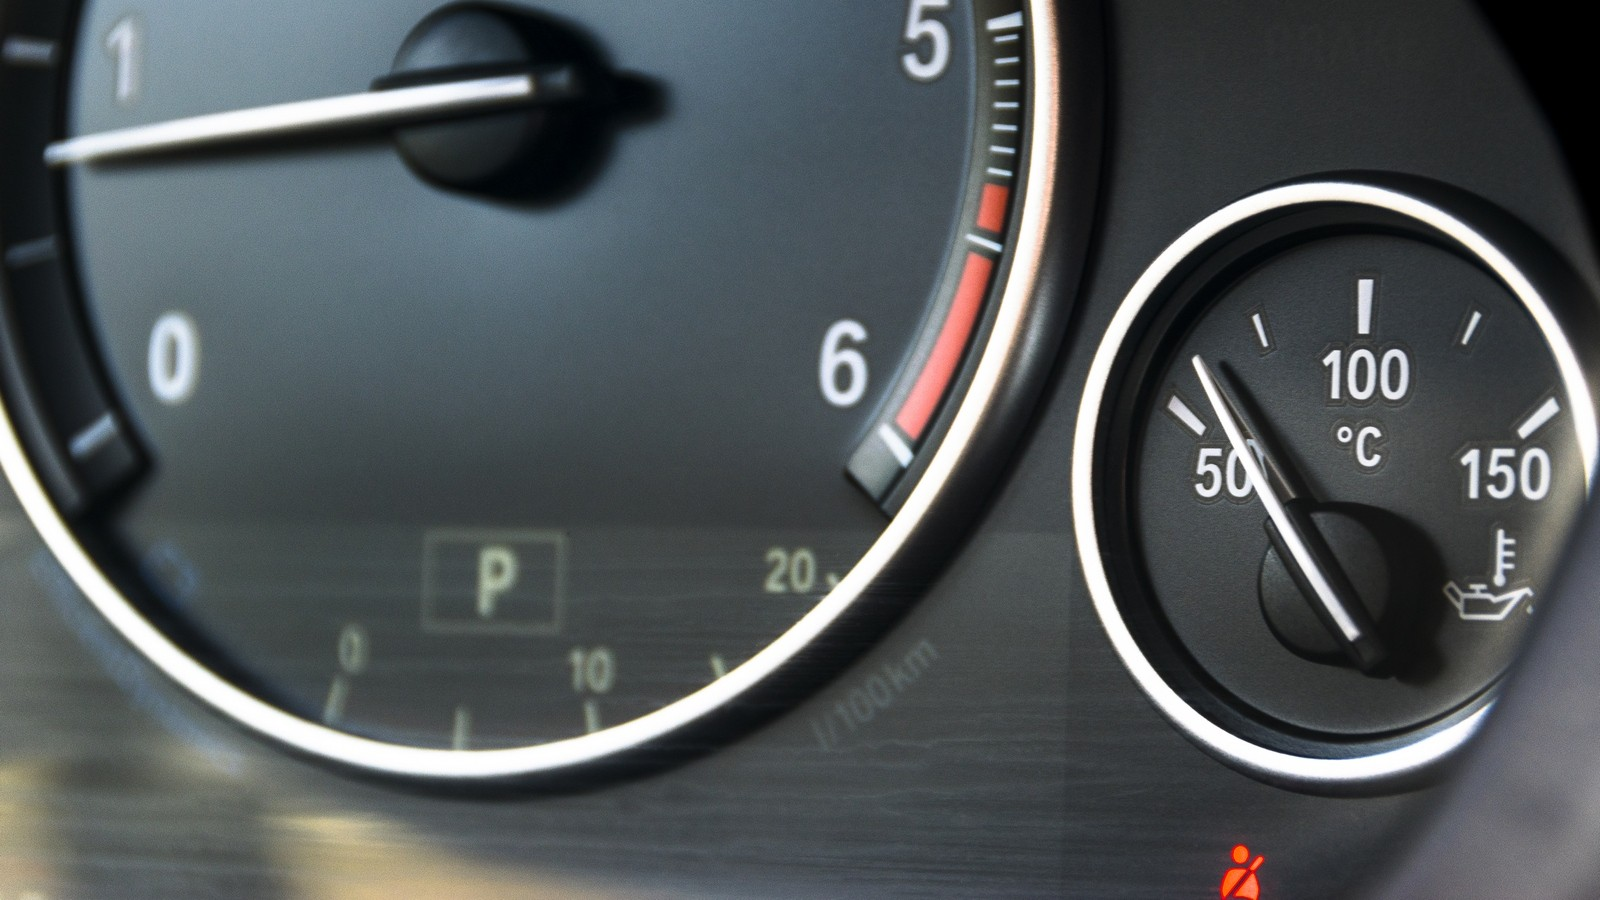 Coolant temperature gauge and tahometer on a car